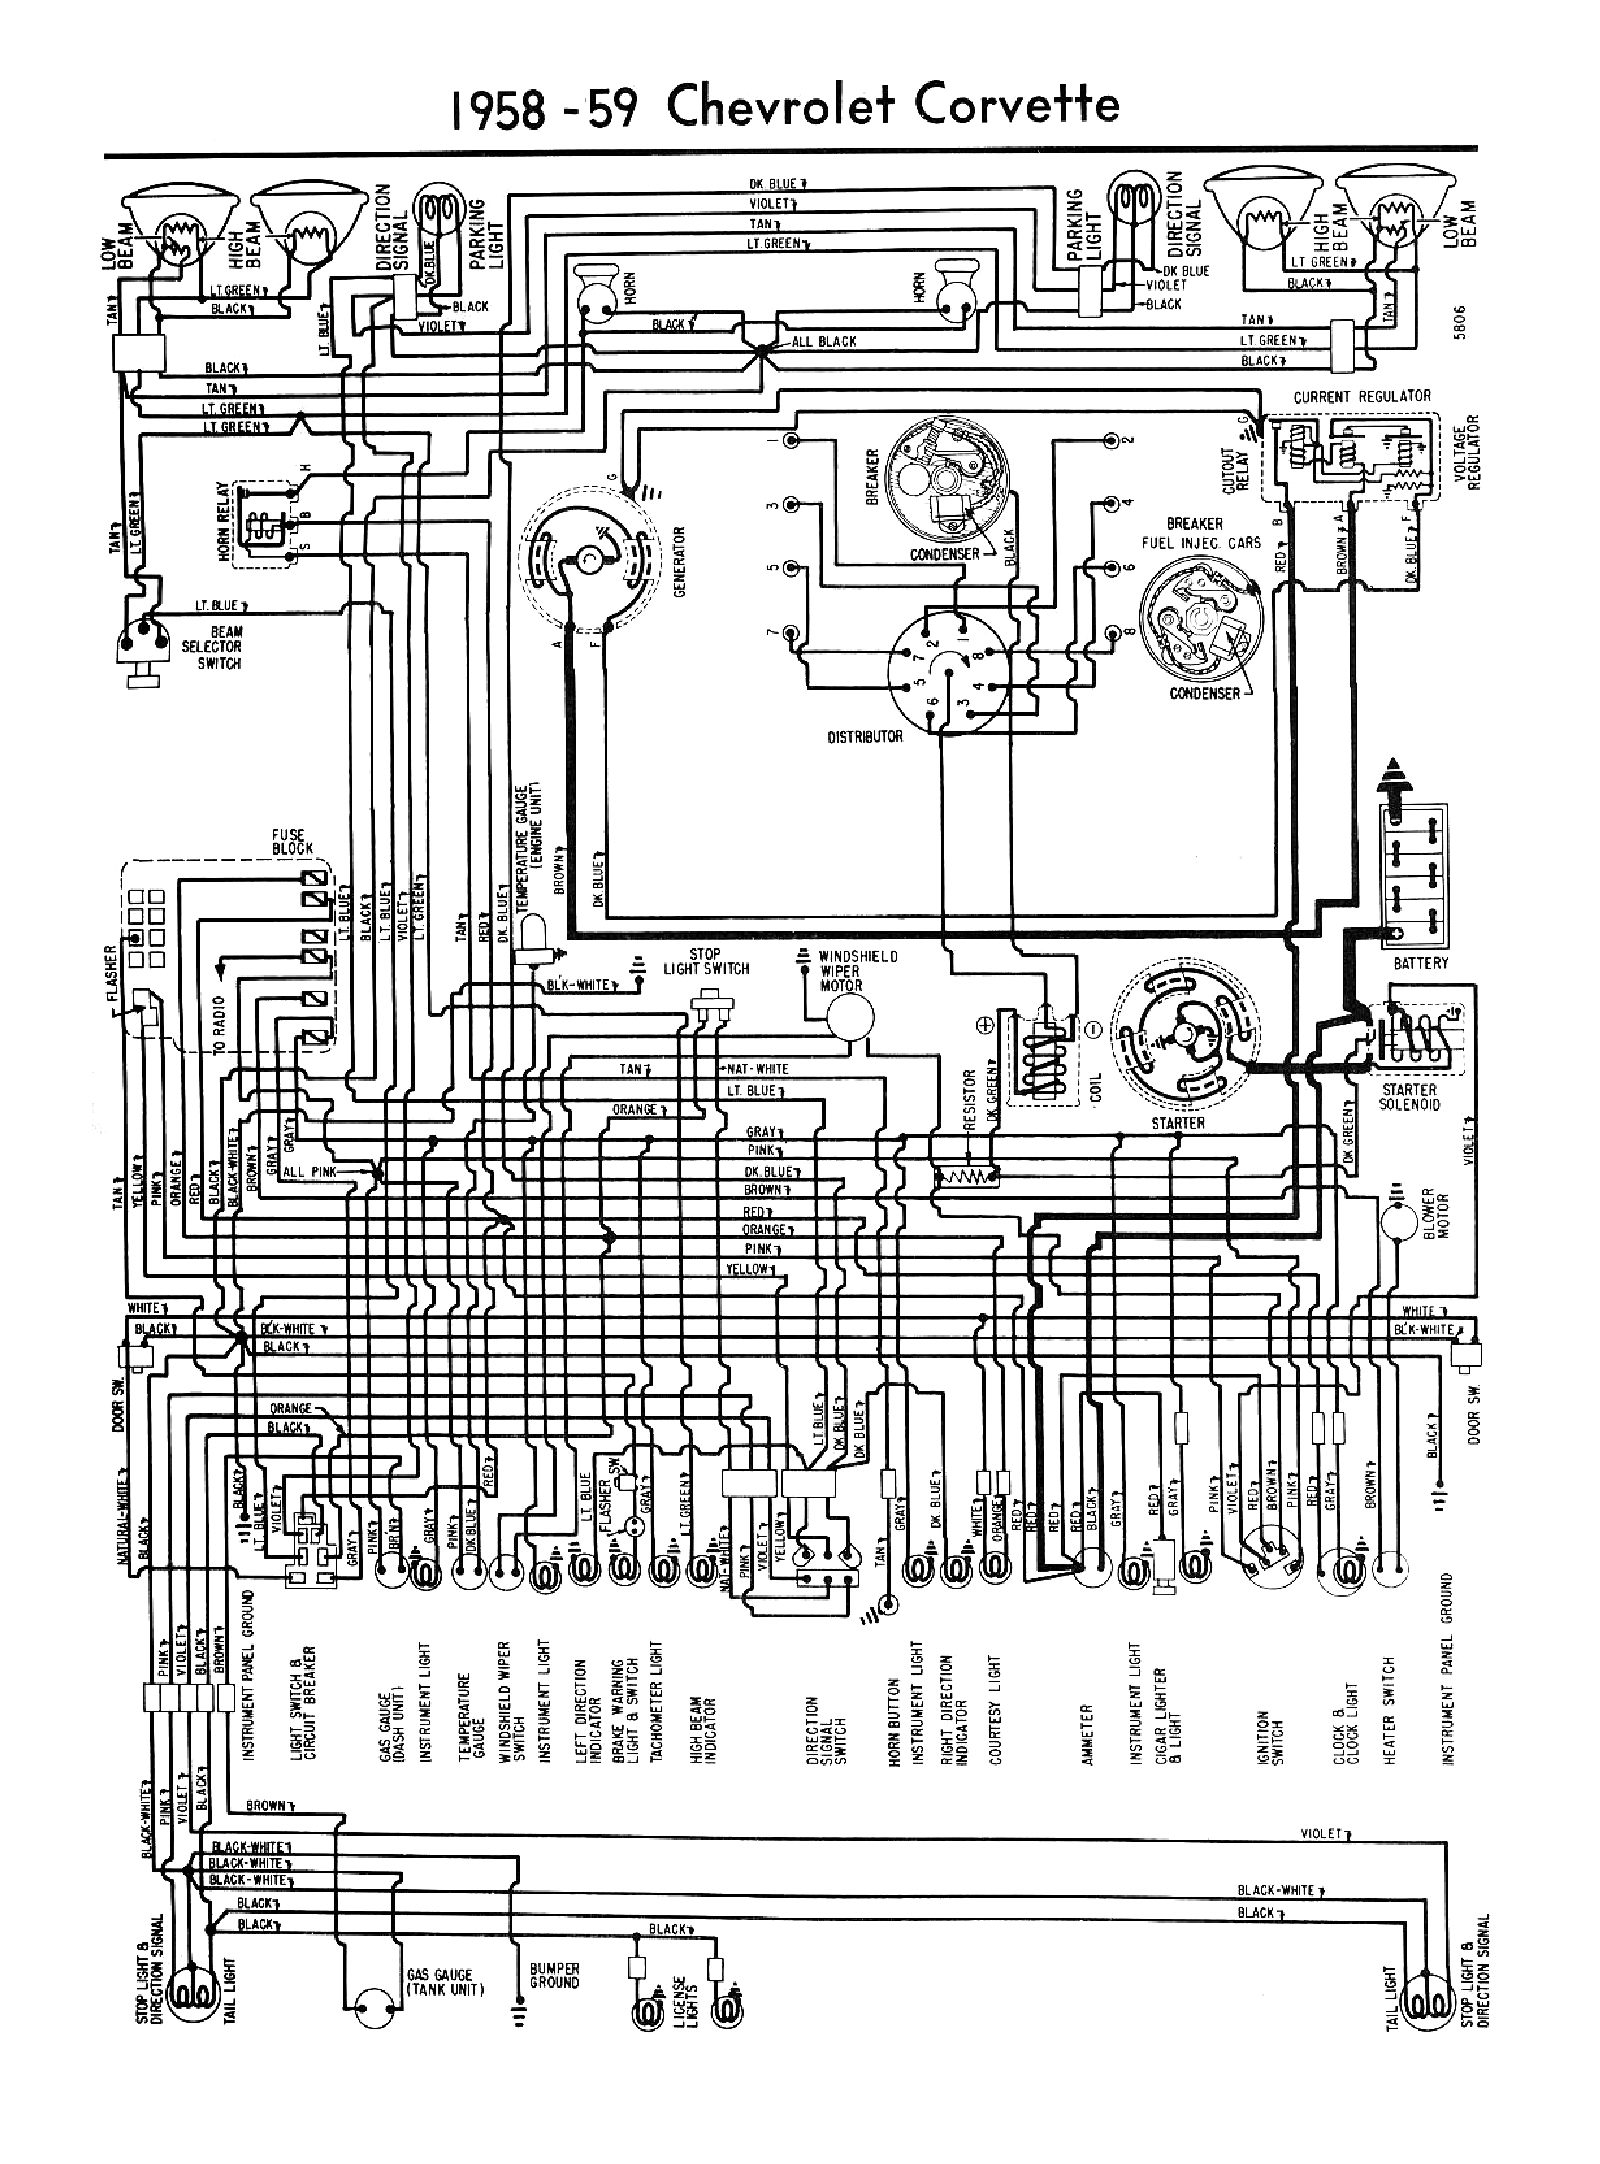 chevy wiring diagrams 1993 dodge ram wiring diagram 1983 dodge truck wiring diagram #23